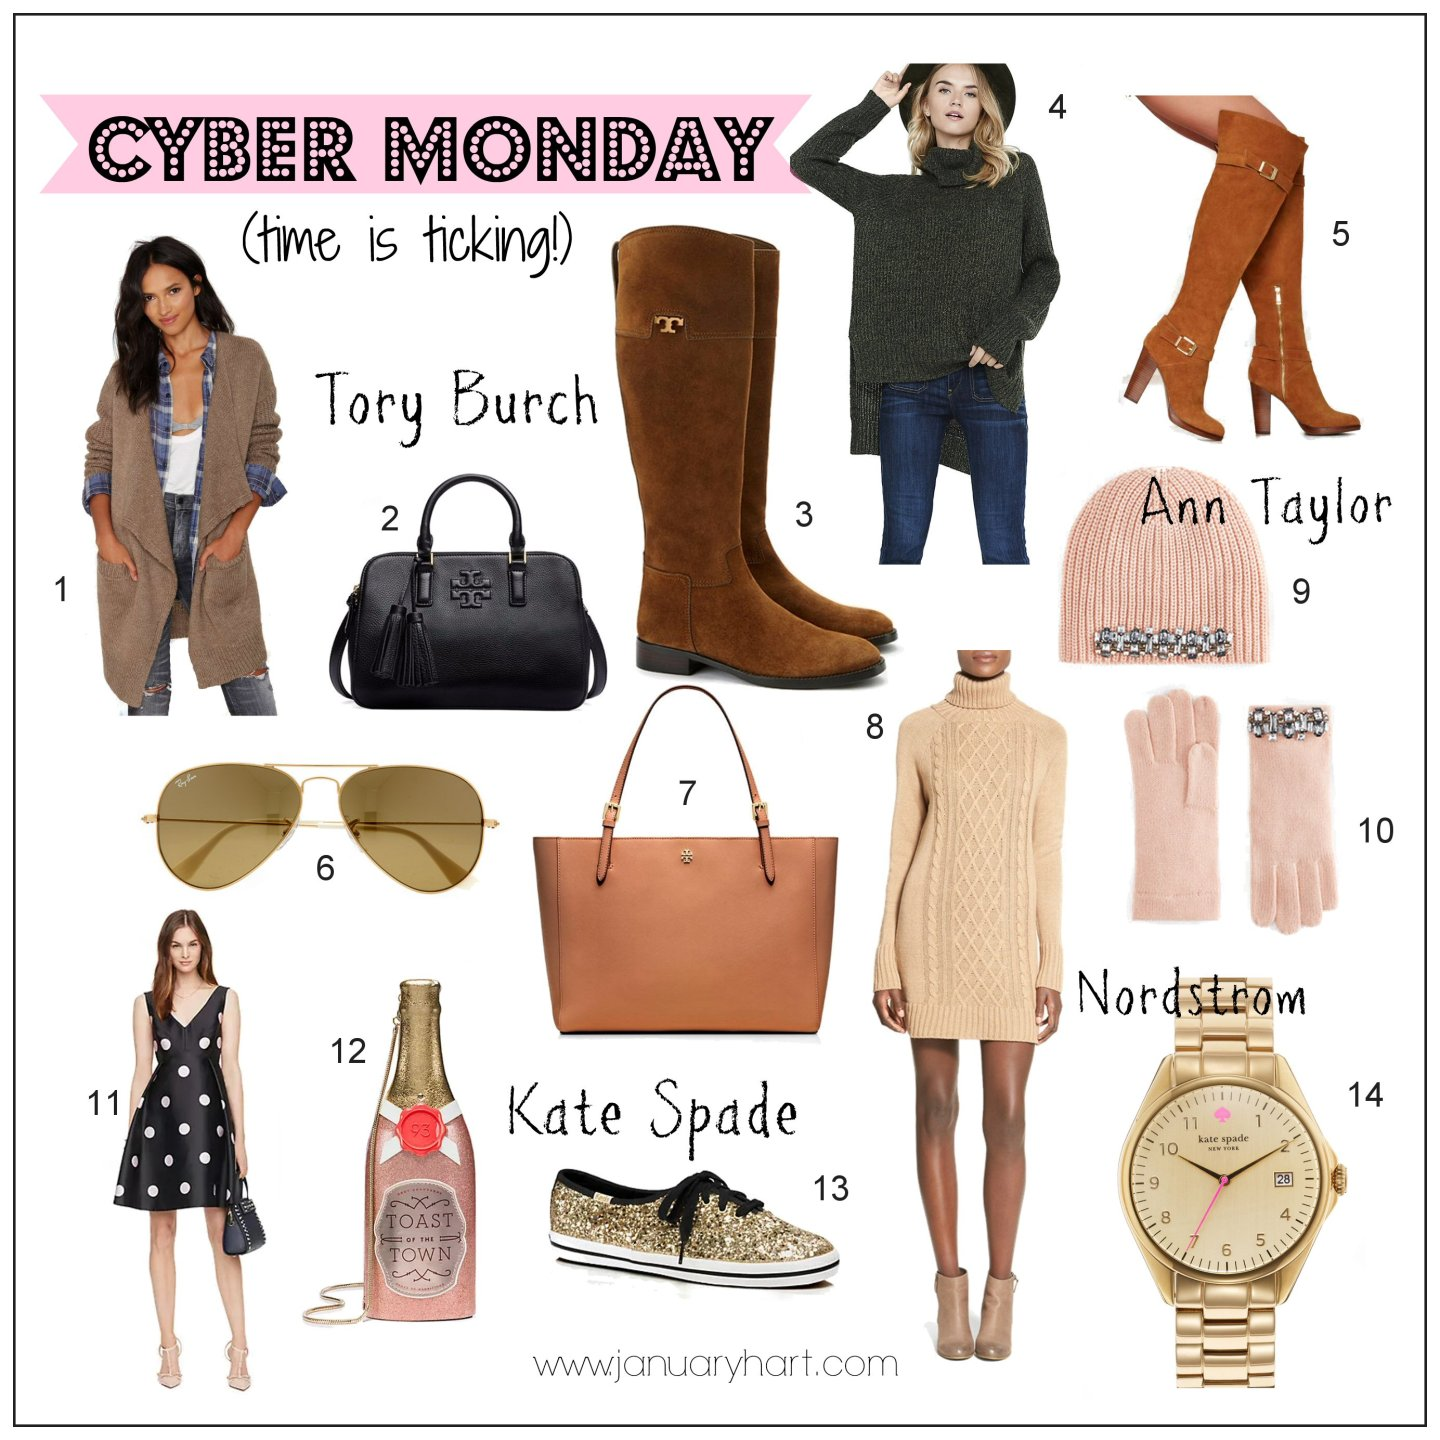 Cyber Monday, Babes!